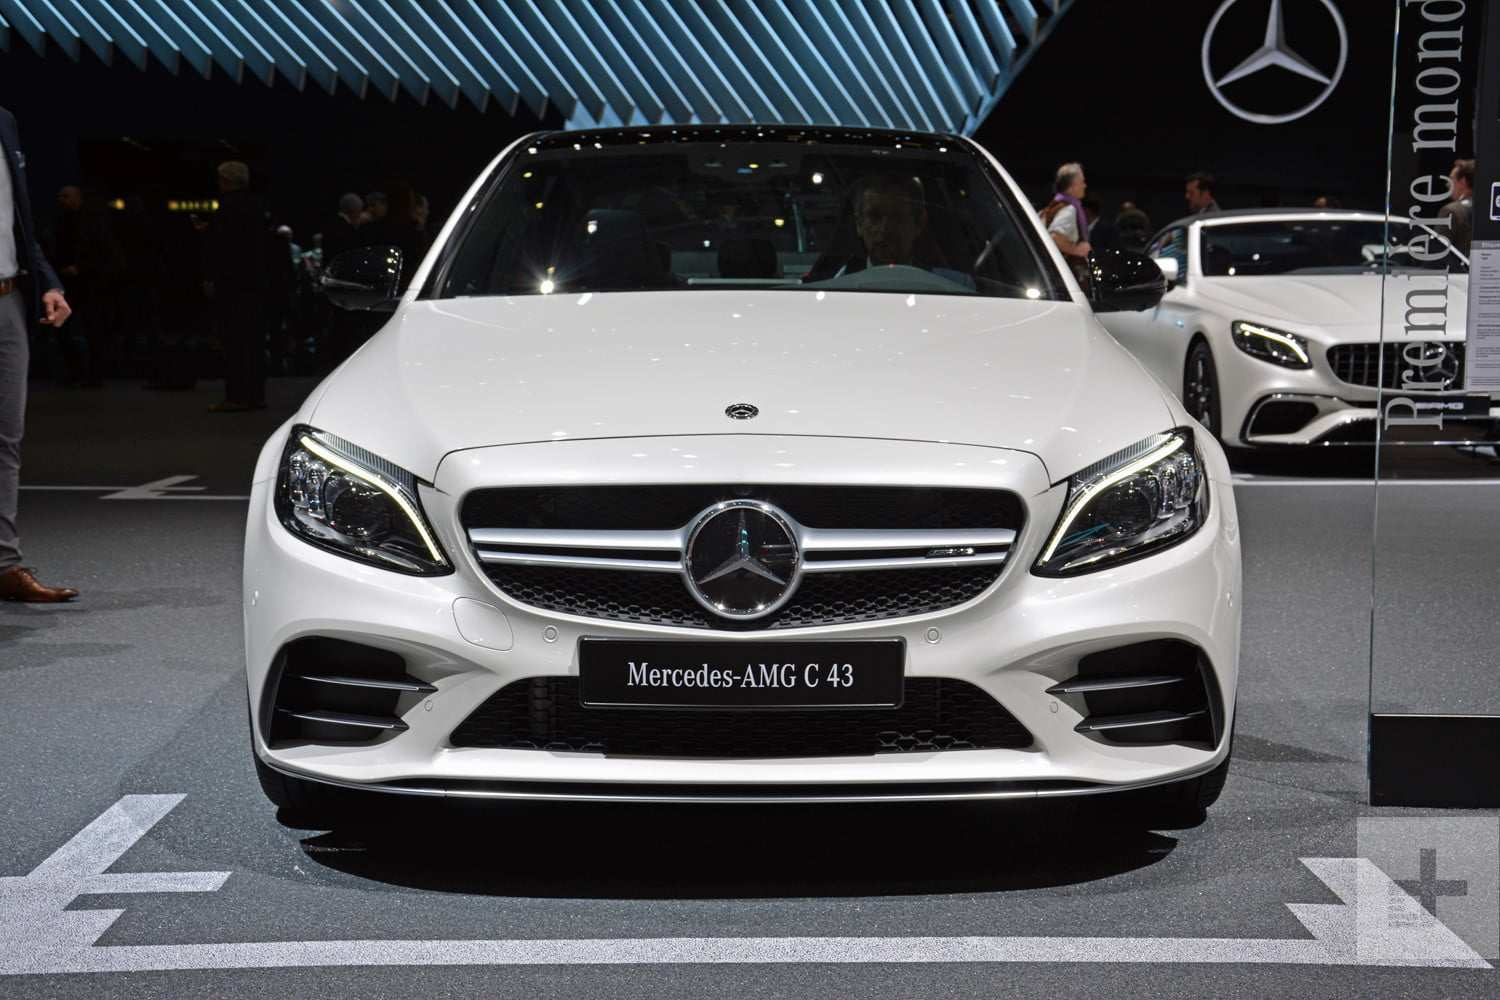 36 Best Review The New Mercedes C Class 2019 Prices for The New Mercedes C Class 2019